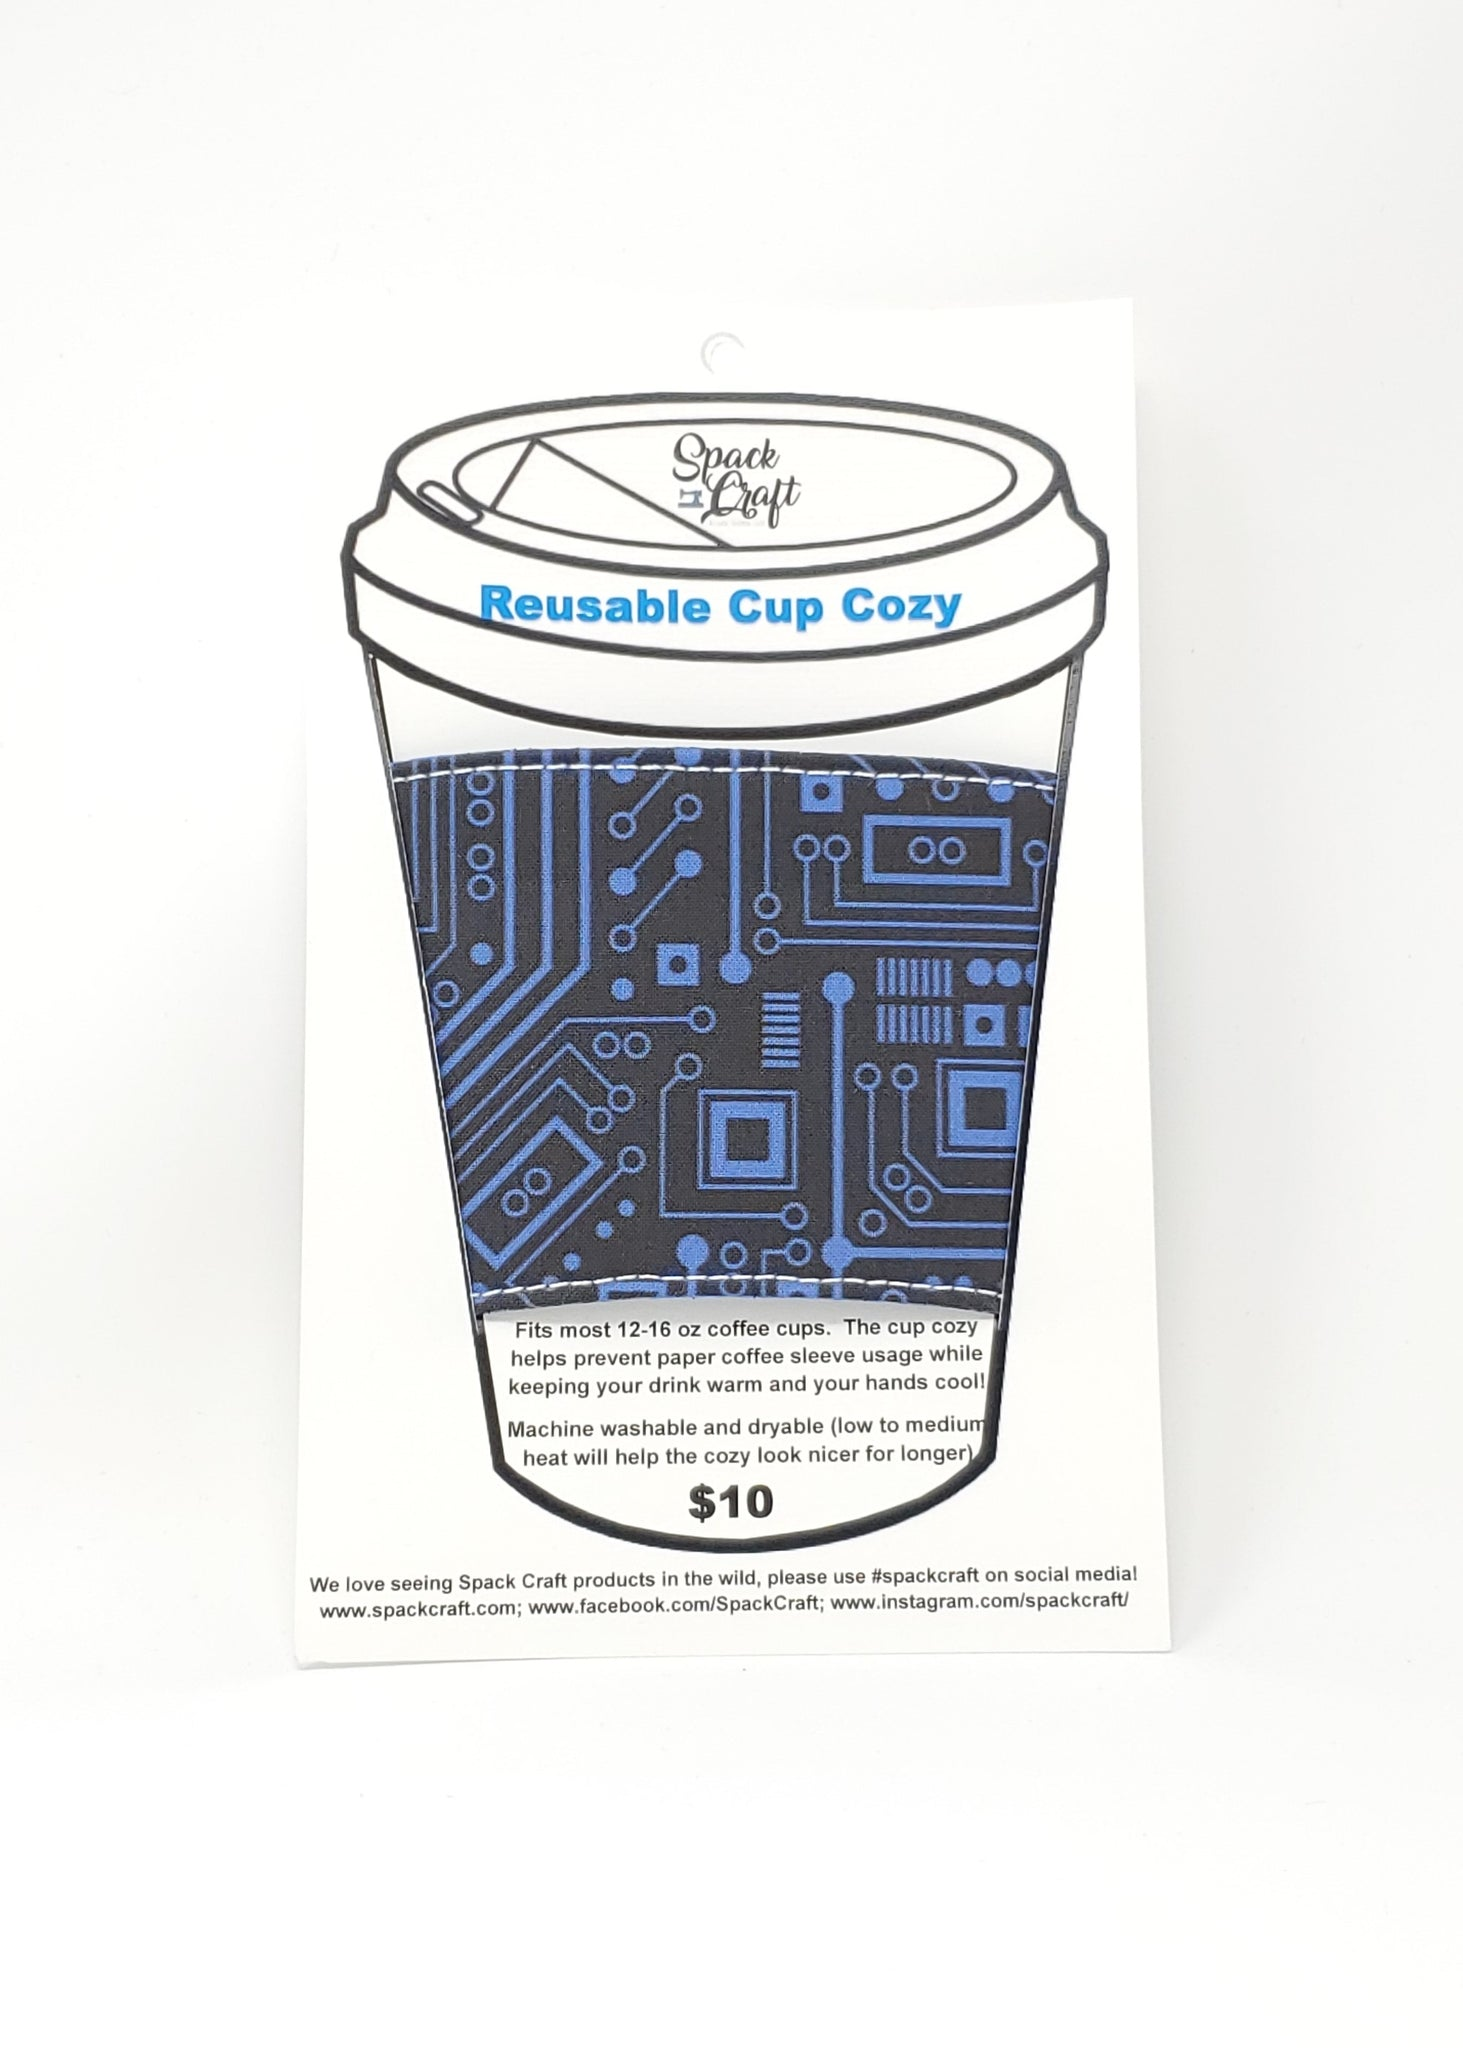 Reusable Cup Cozy - Short Circuit (Blue) - In Packaging